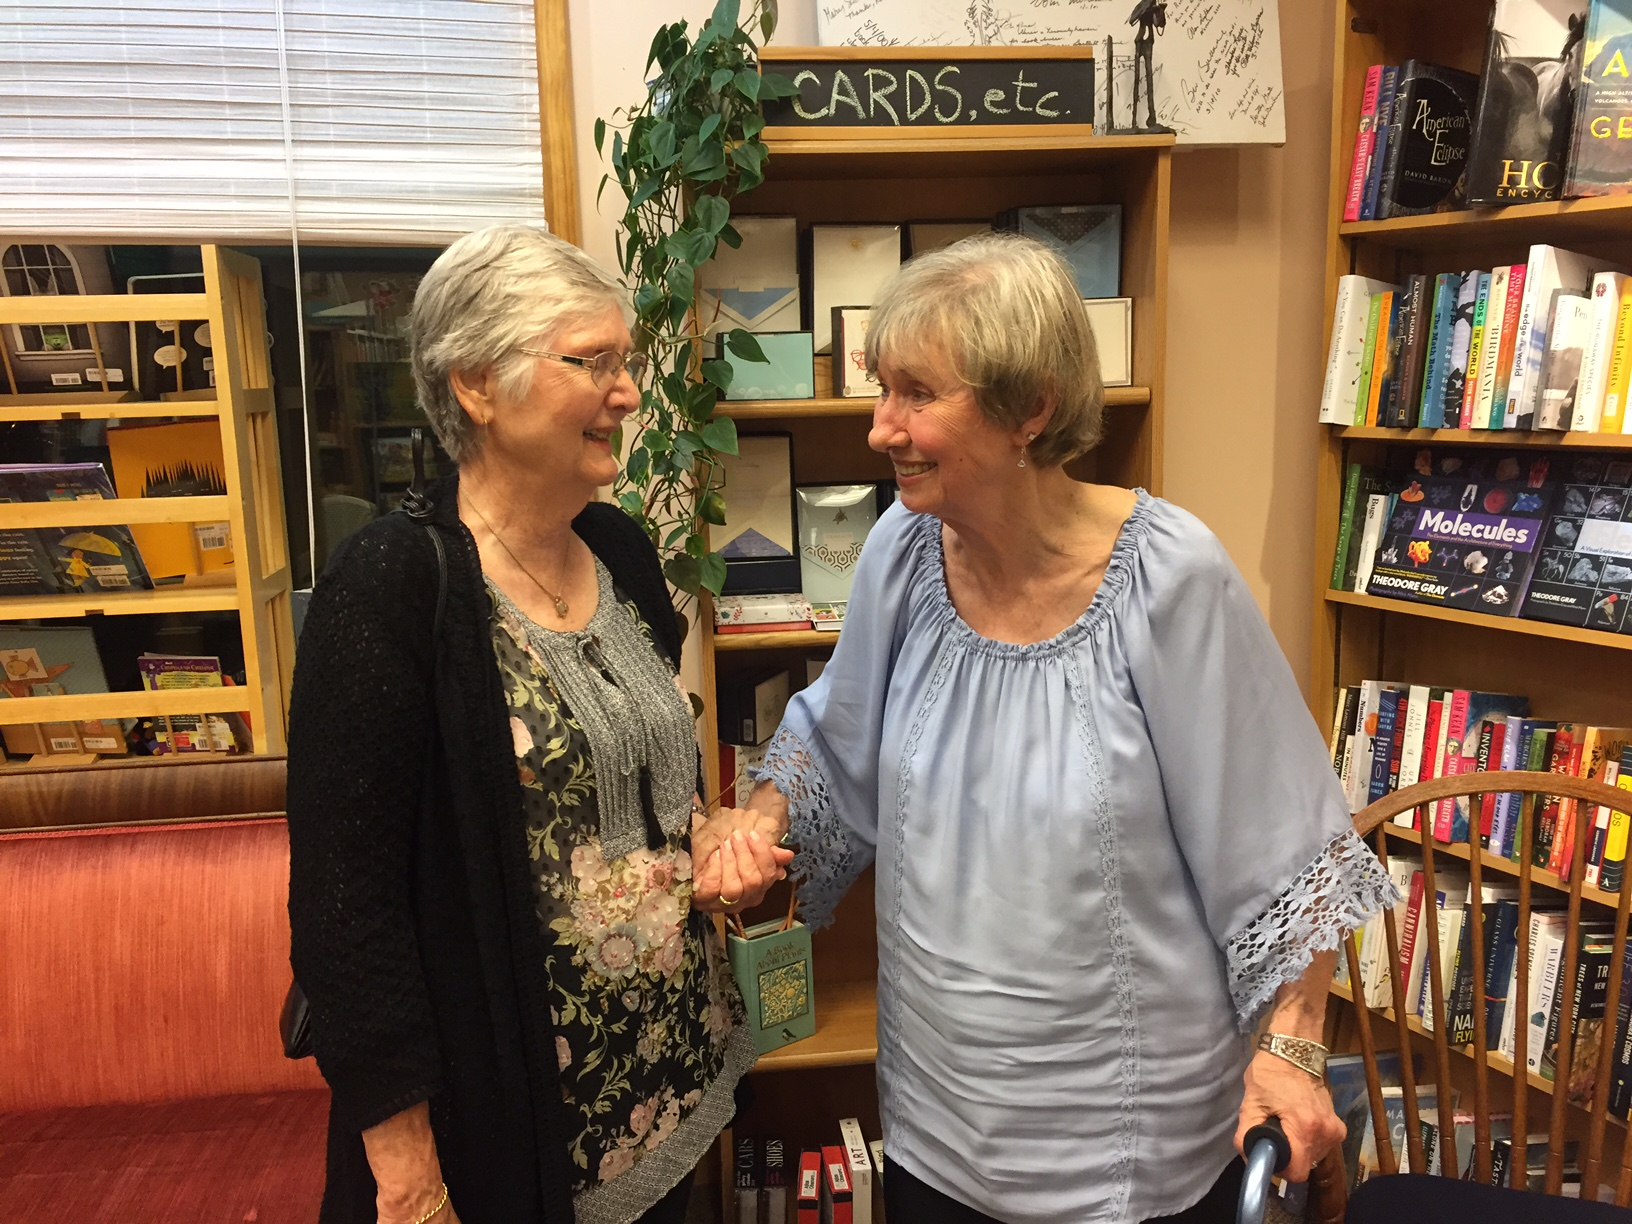 Carlene Gaillard, dear friend from Port St. Joe days ,  and Ruth Chambers remembering good times. Carlene introduced Ruth to Nancy Drew mysteries.